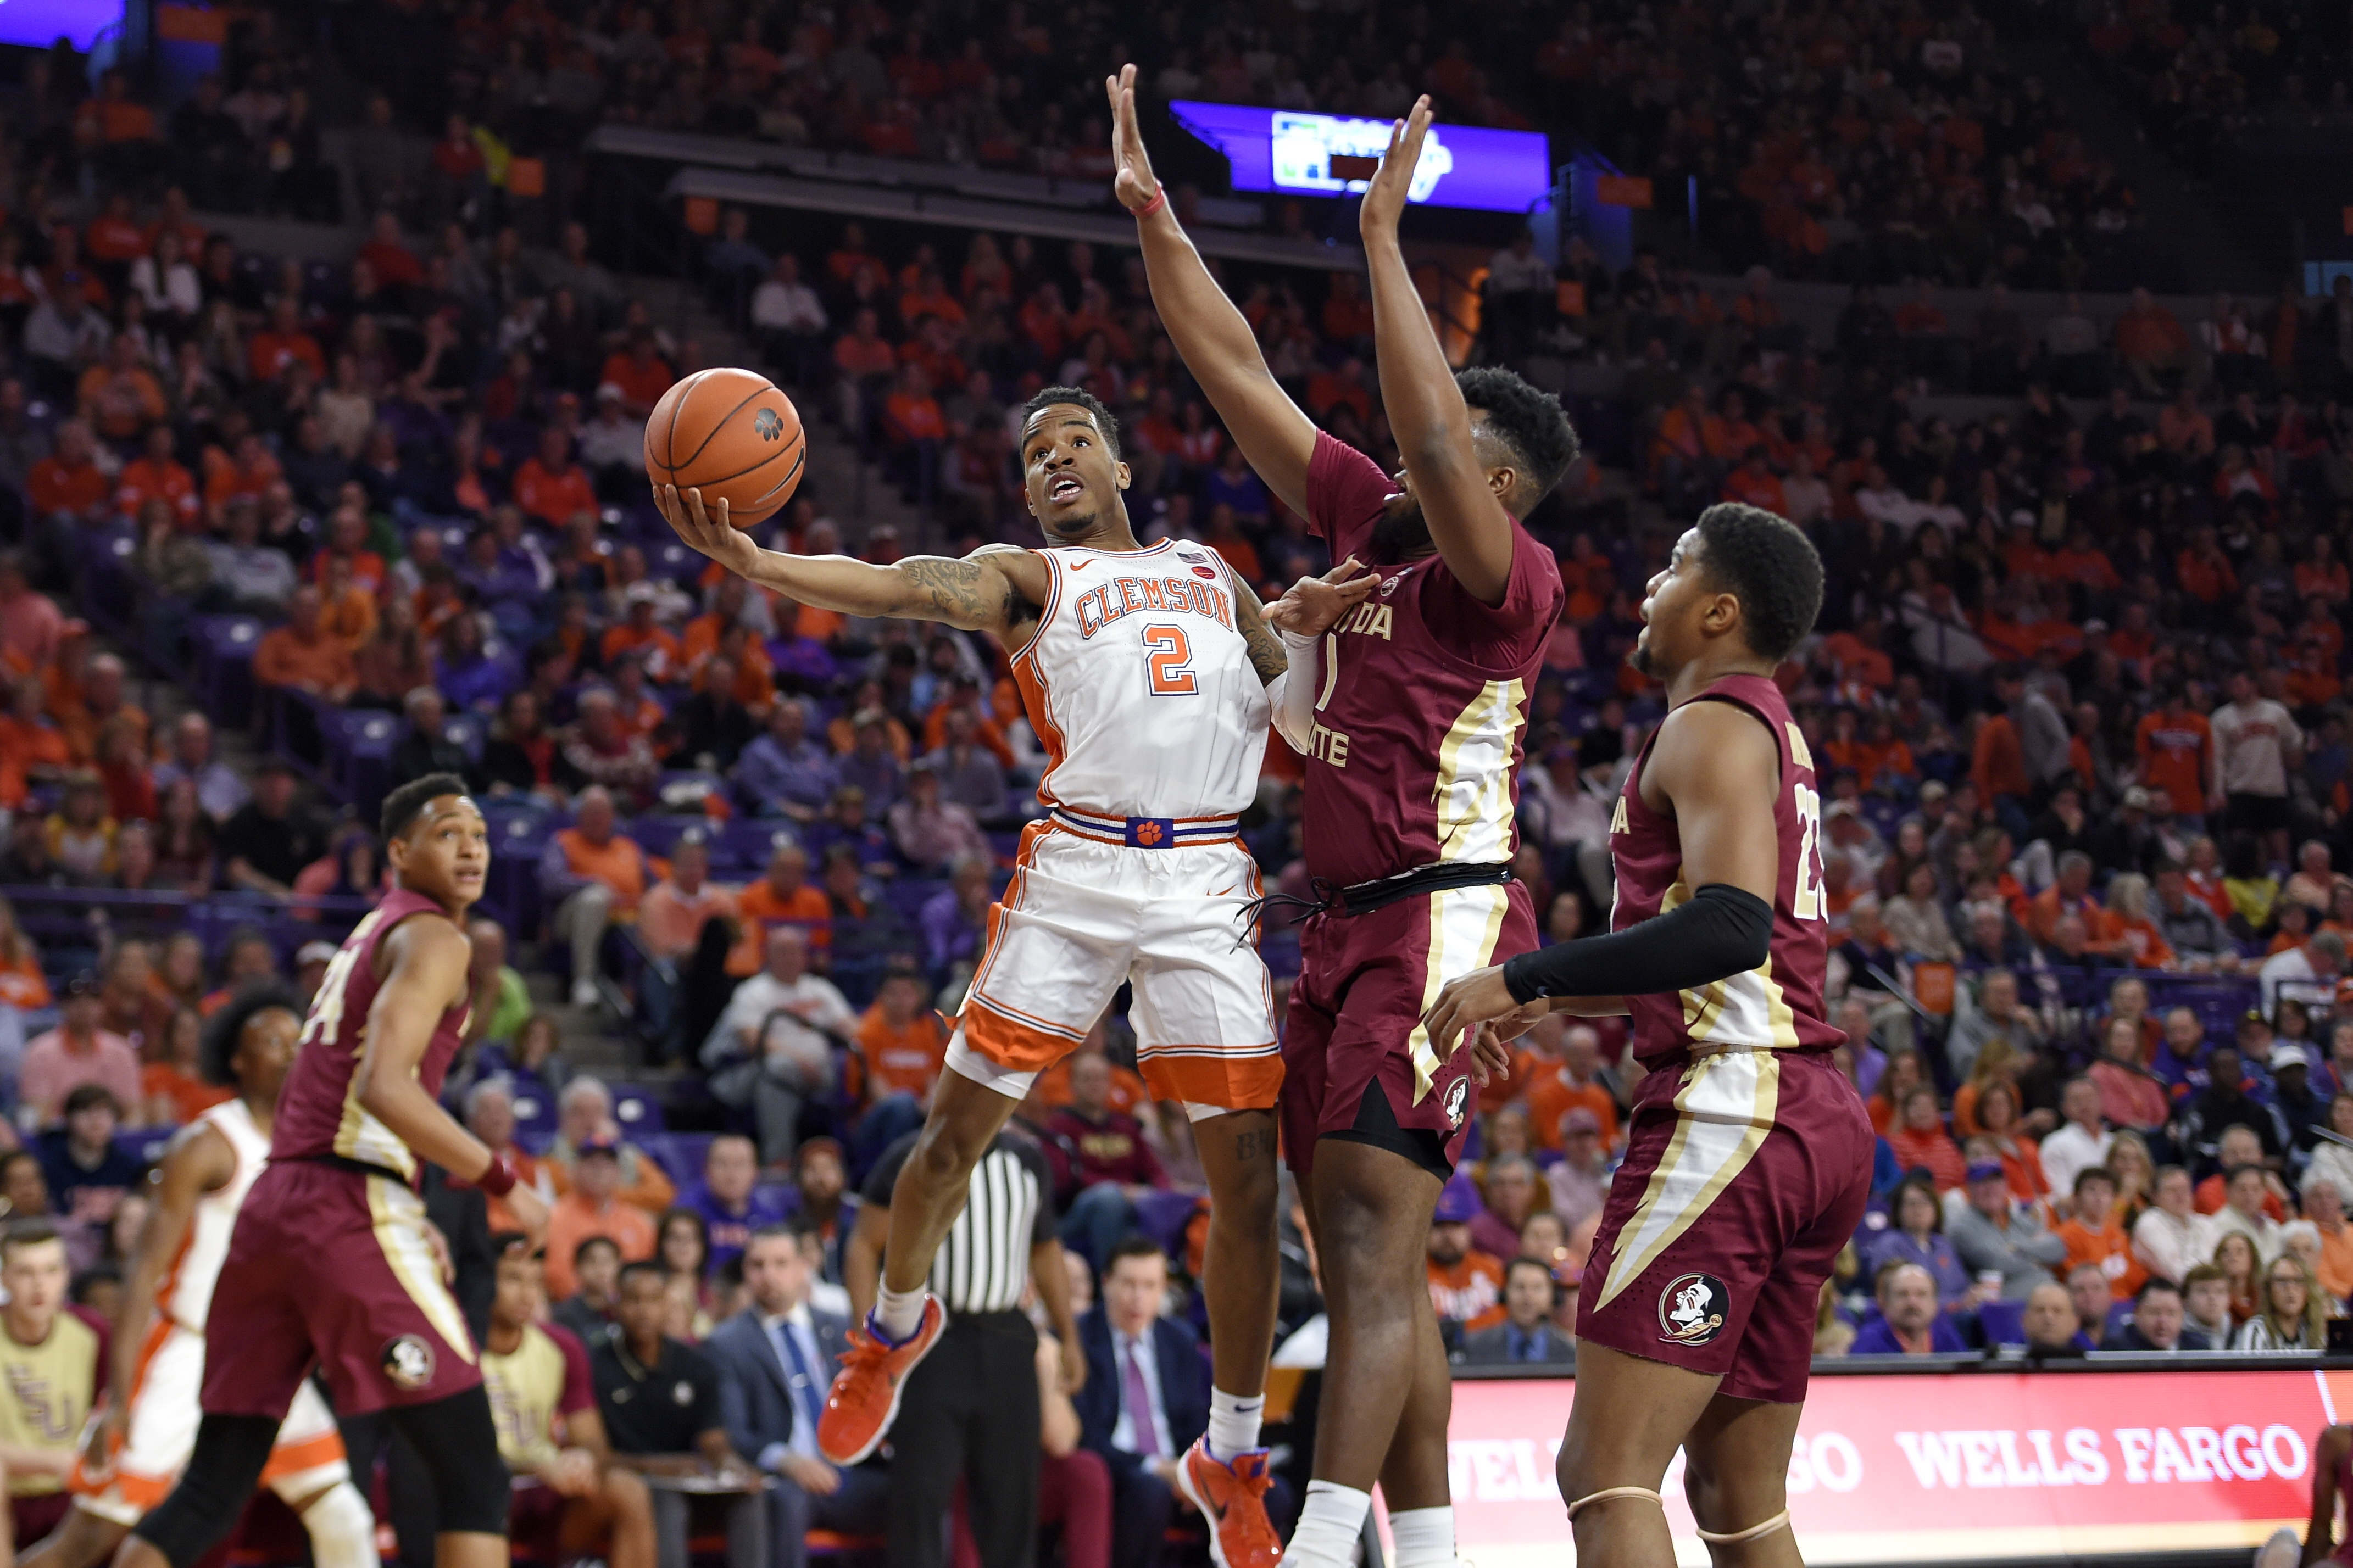 Dawes' dash lifts Clemson to 70-69 win over No. 6 Seminoles